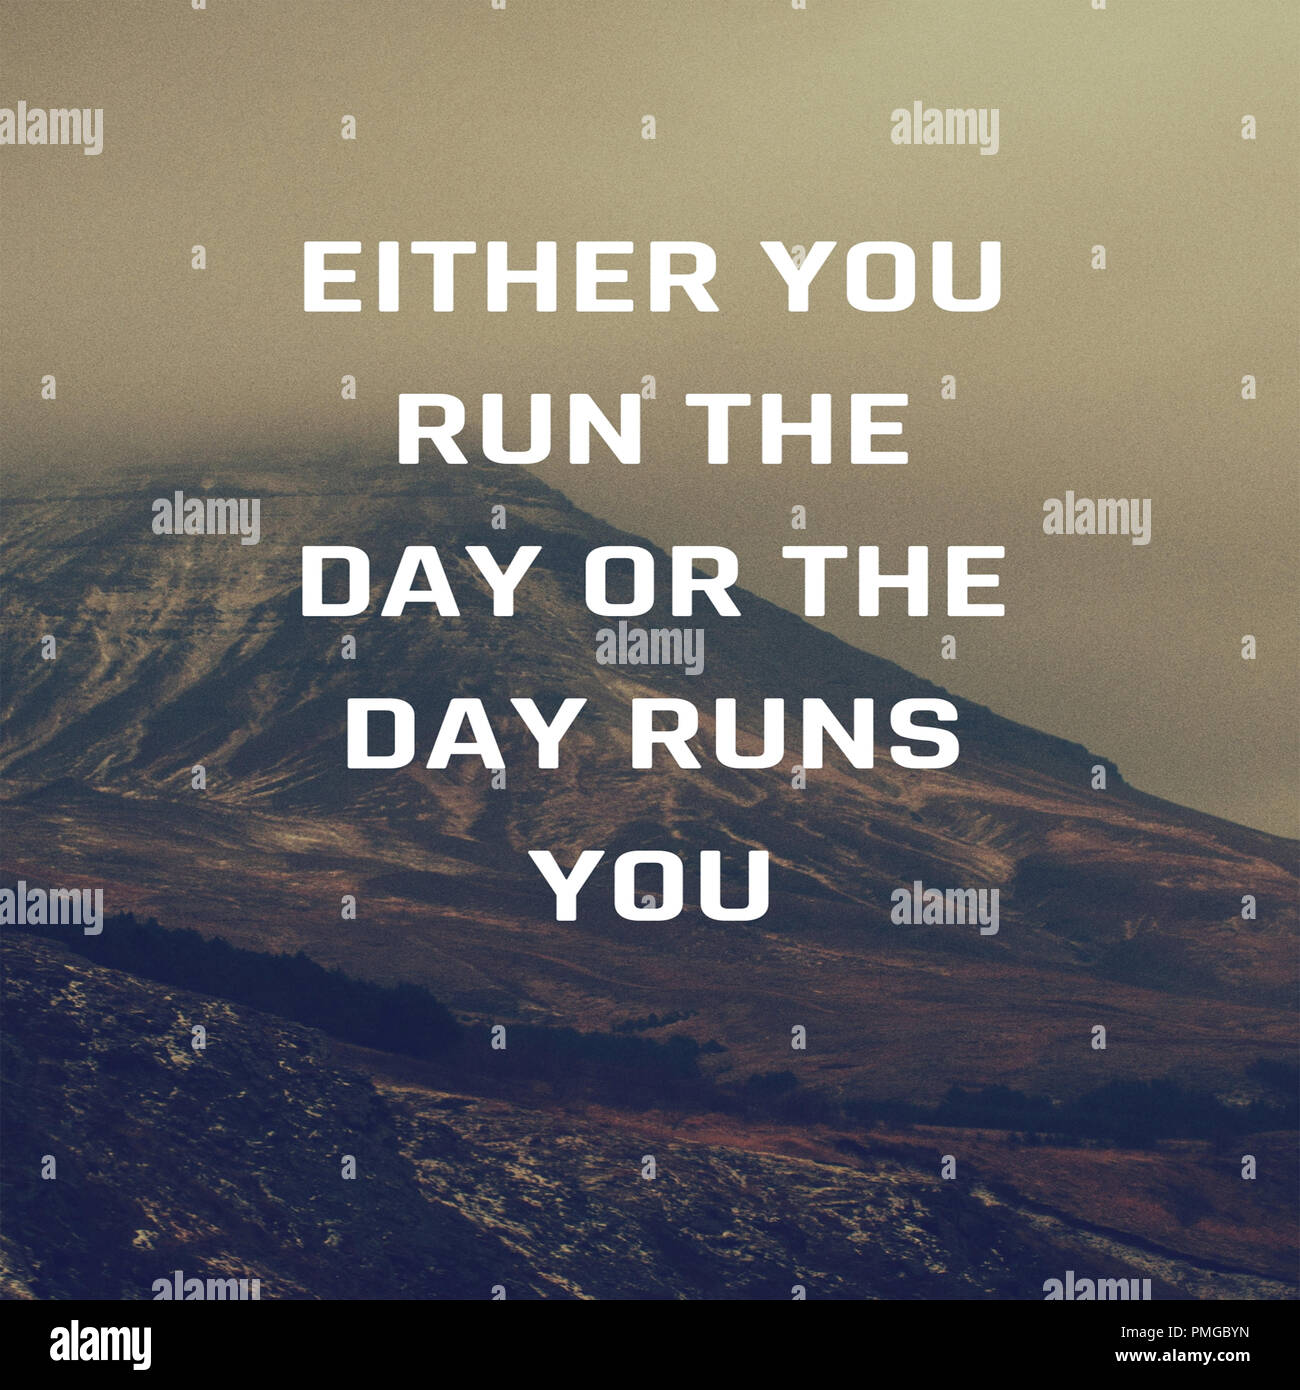 Inspirational Quotes Either You Run The Day Or The Day